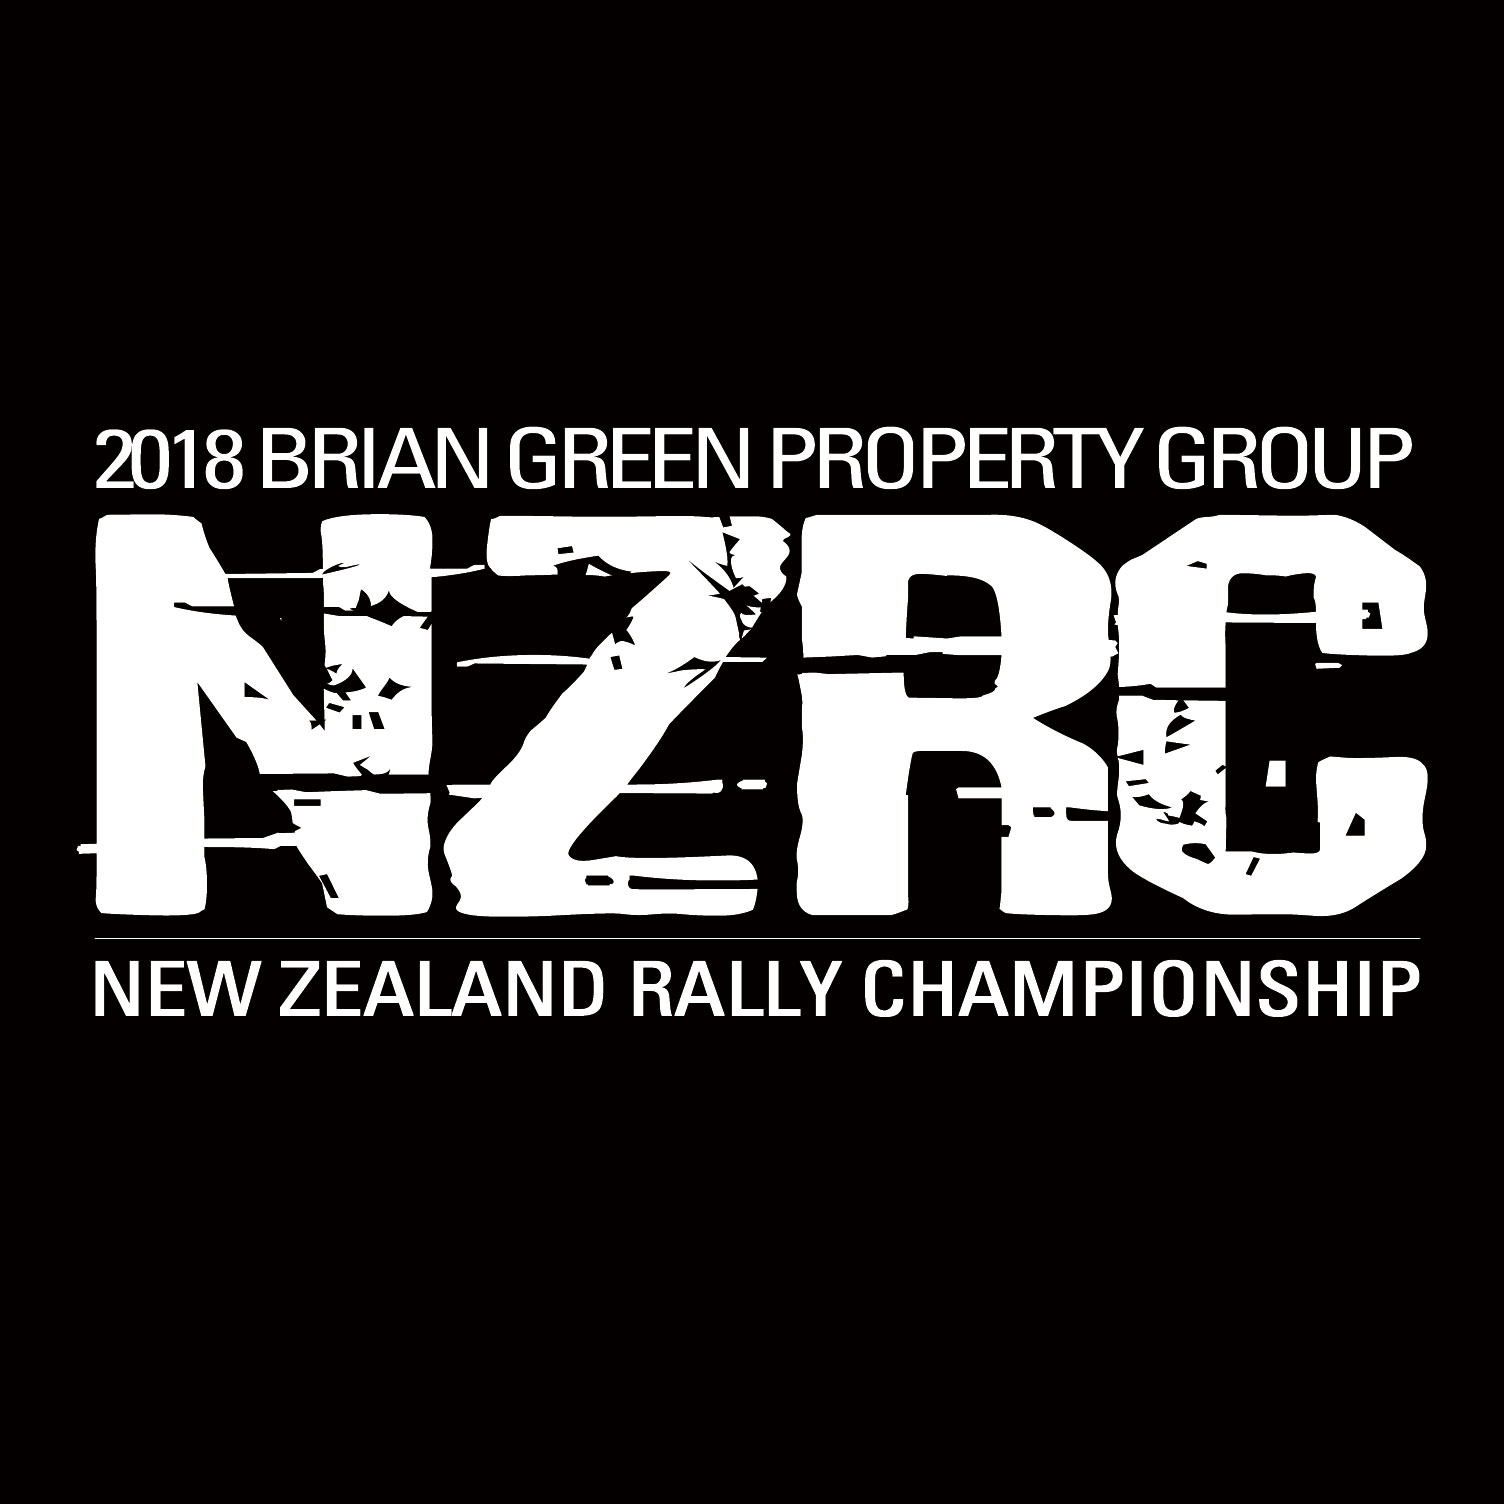 One driver will take the ultimate reward in New Zealand rallying! | :: Brian Green Property Group New Zealand Rally Championship ::